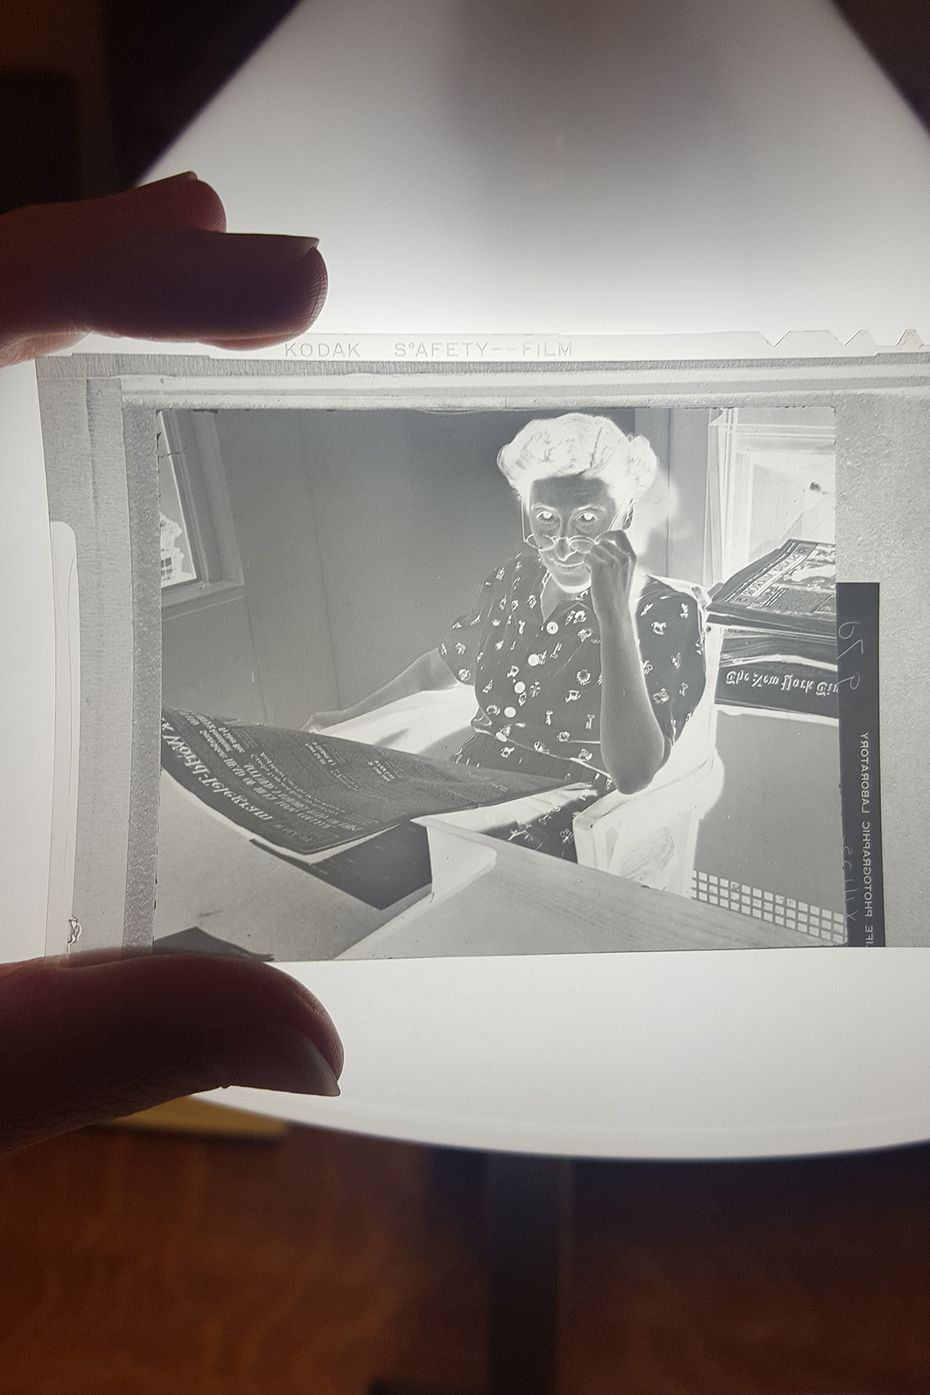 Head researcher Mary Fraser works on a story in this undated negative.